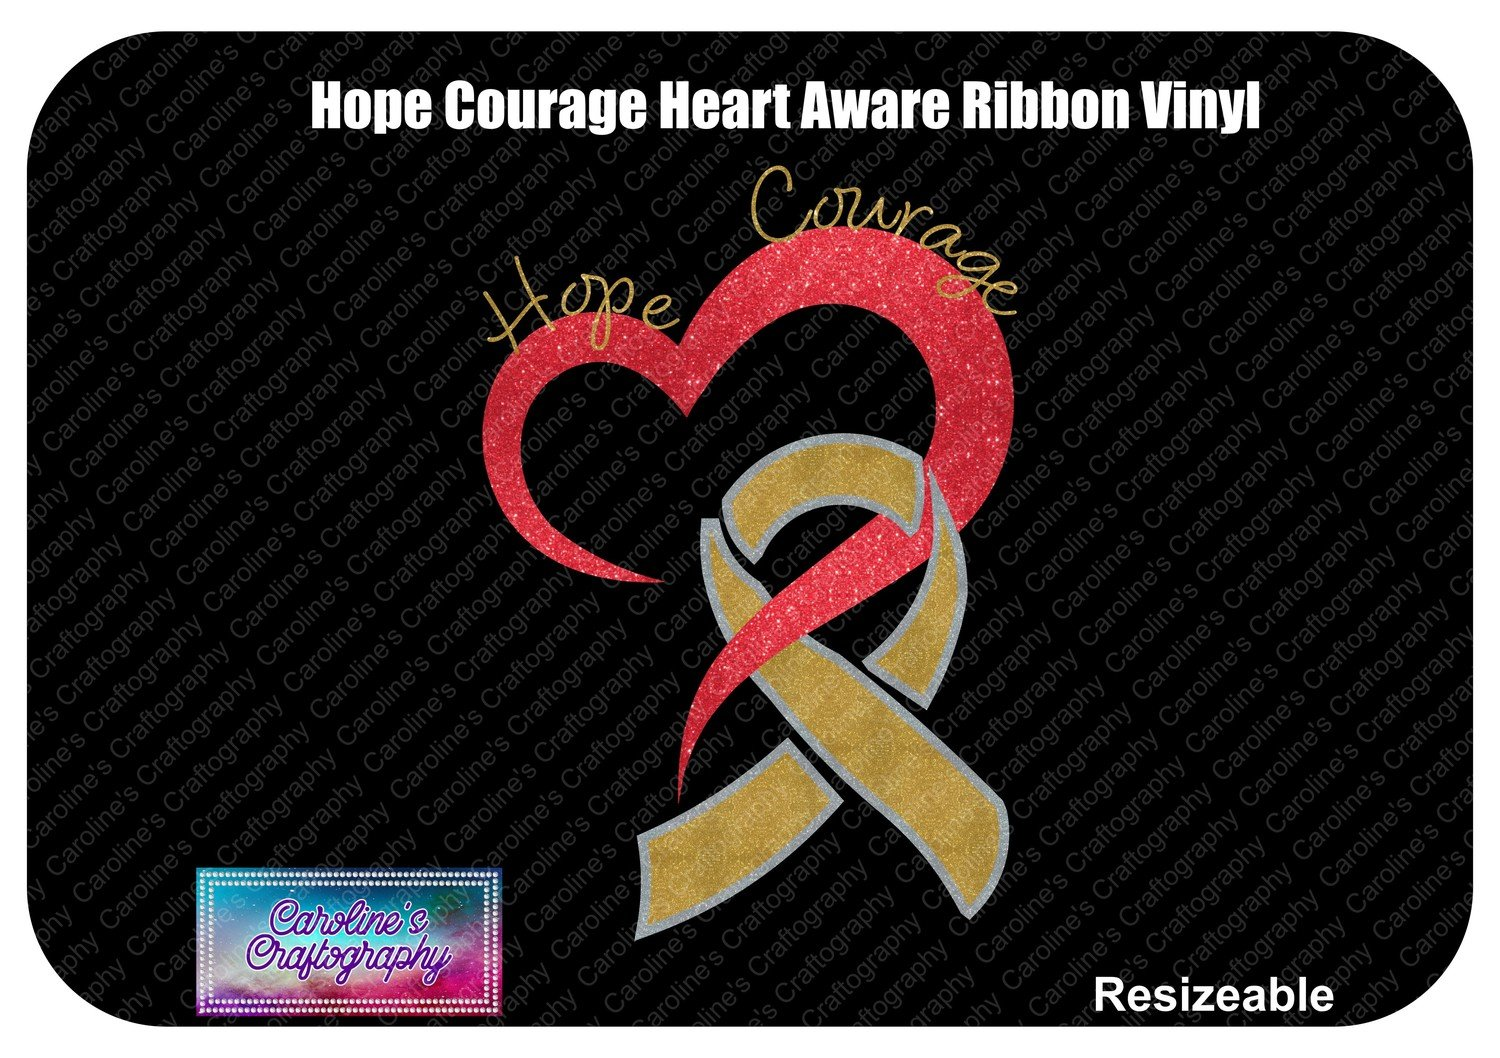 Hope Courage Heart Awareness Ribbon Vinyl